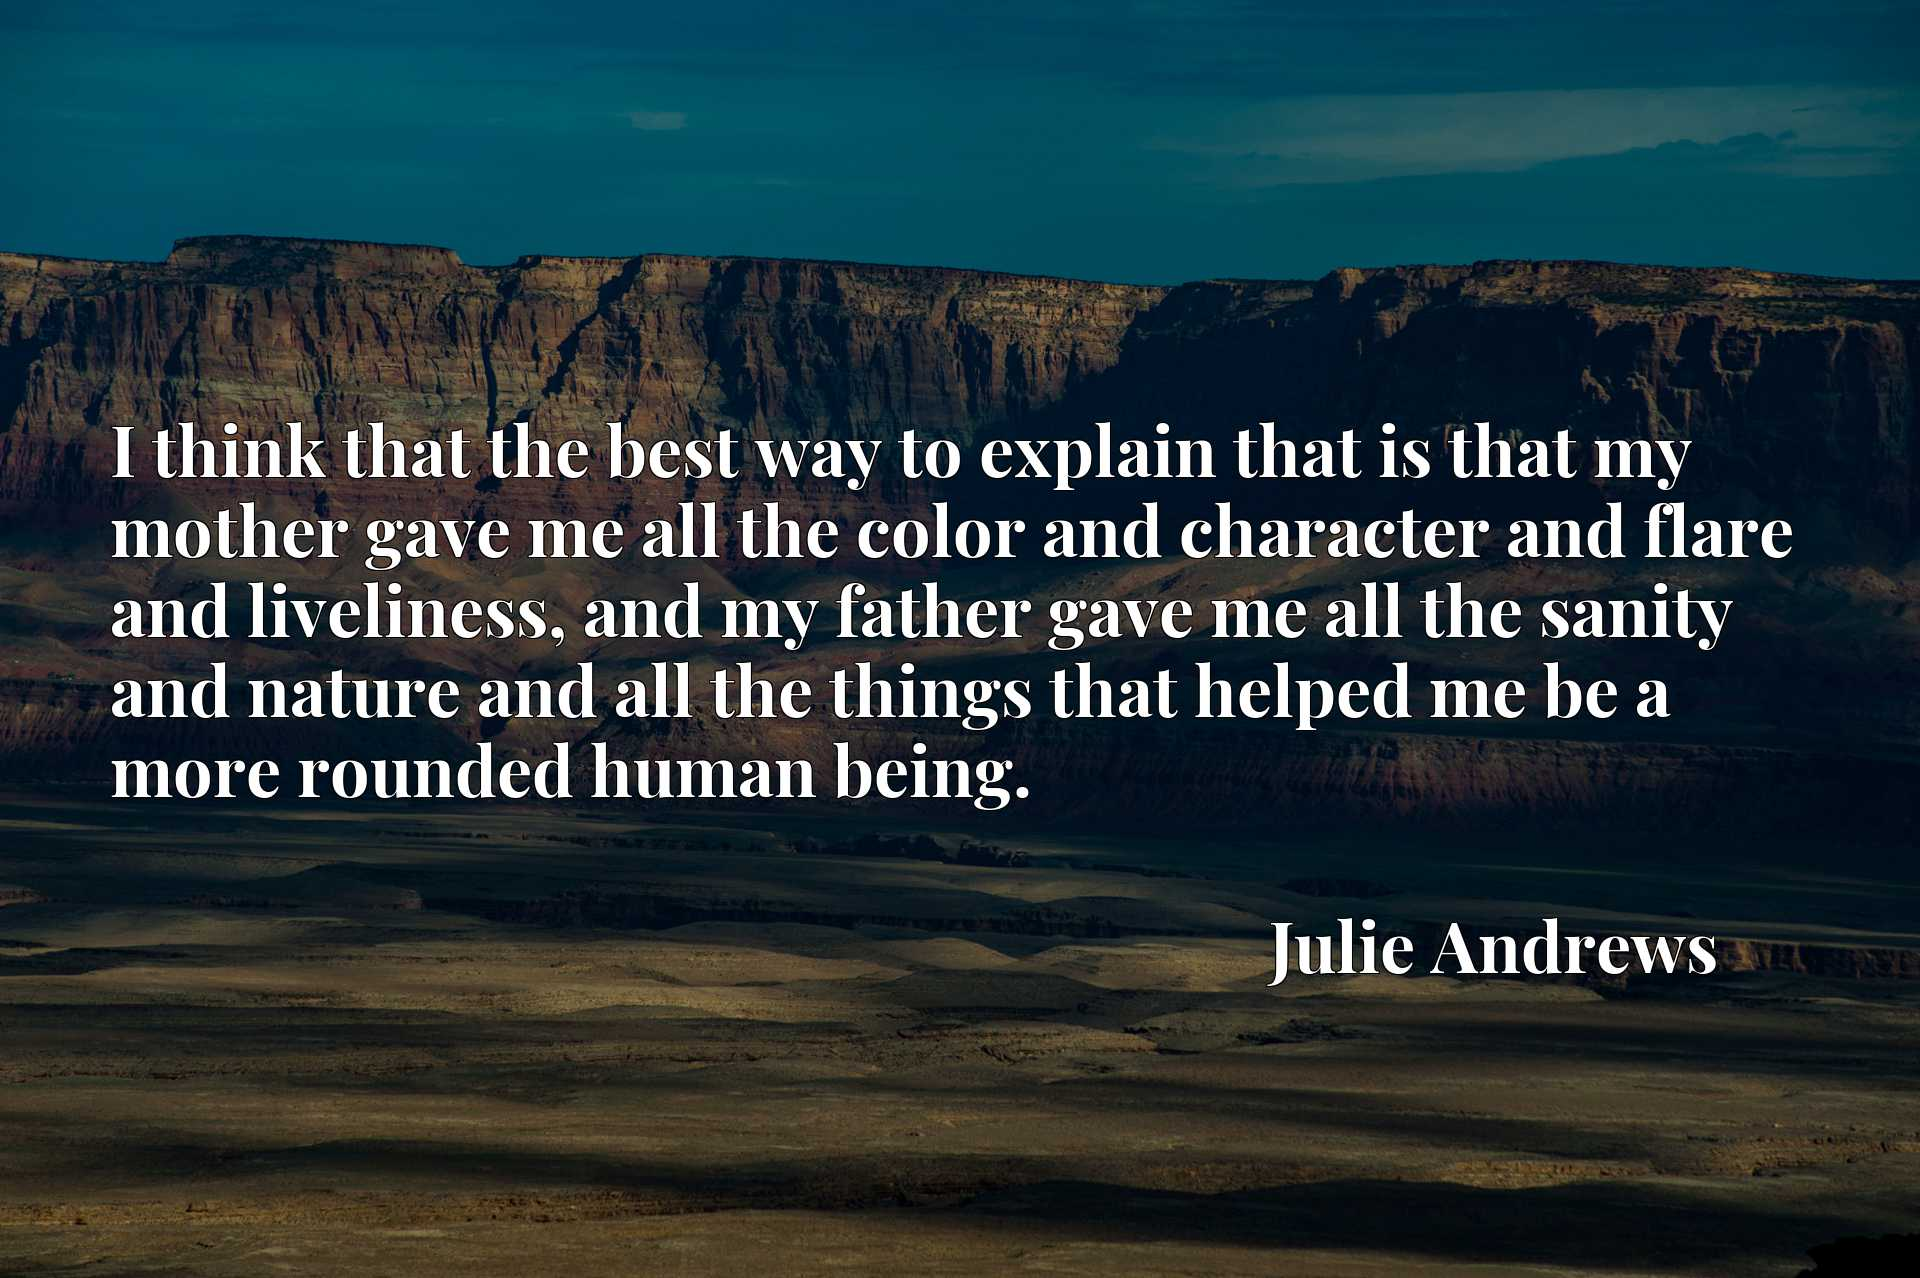 Quote Picture :I think that the best way to explain that is that my mother gave me all the color and character and flare and liveliness, and my father gave me all the sanity and nature and all the things that helped me be a more rounded human being.